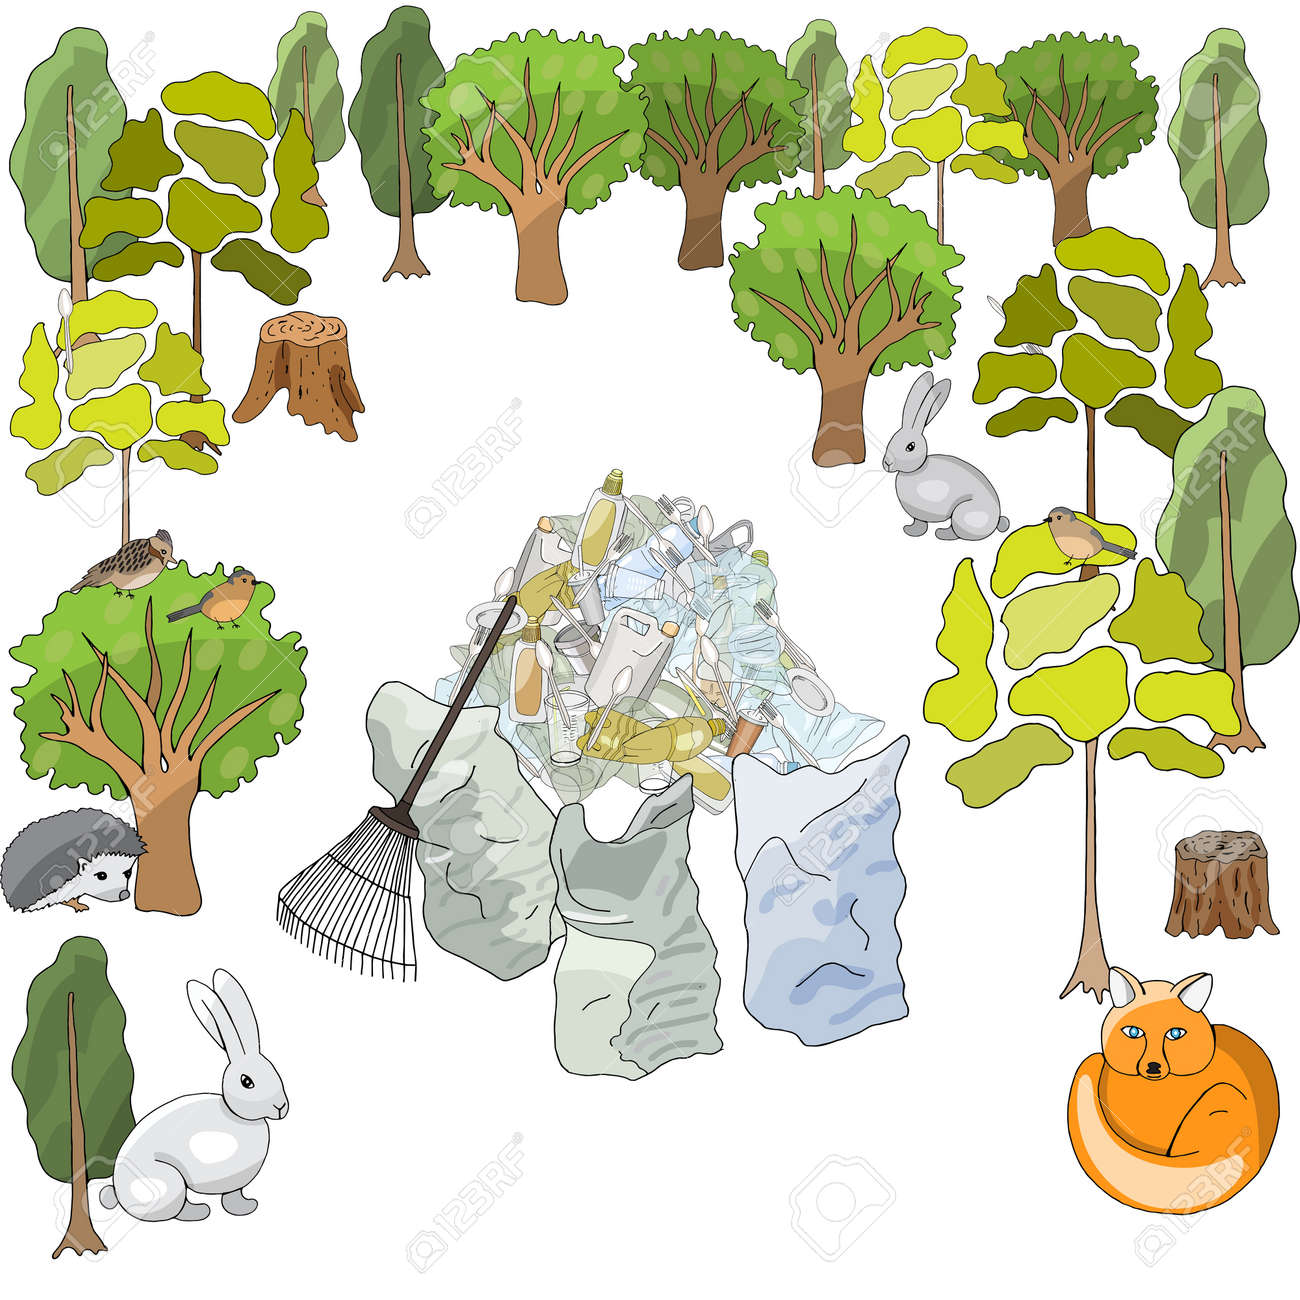 Pollution of the environment. Garbage and waste in forests, in wildlife. Different types of garbage. Vector hand draw collection. Concept of Recycles Day, World Cleanup Day and ecology - 160860751